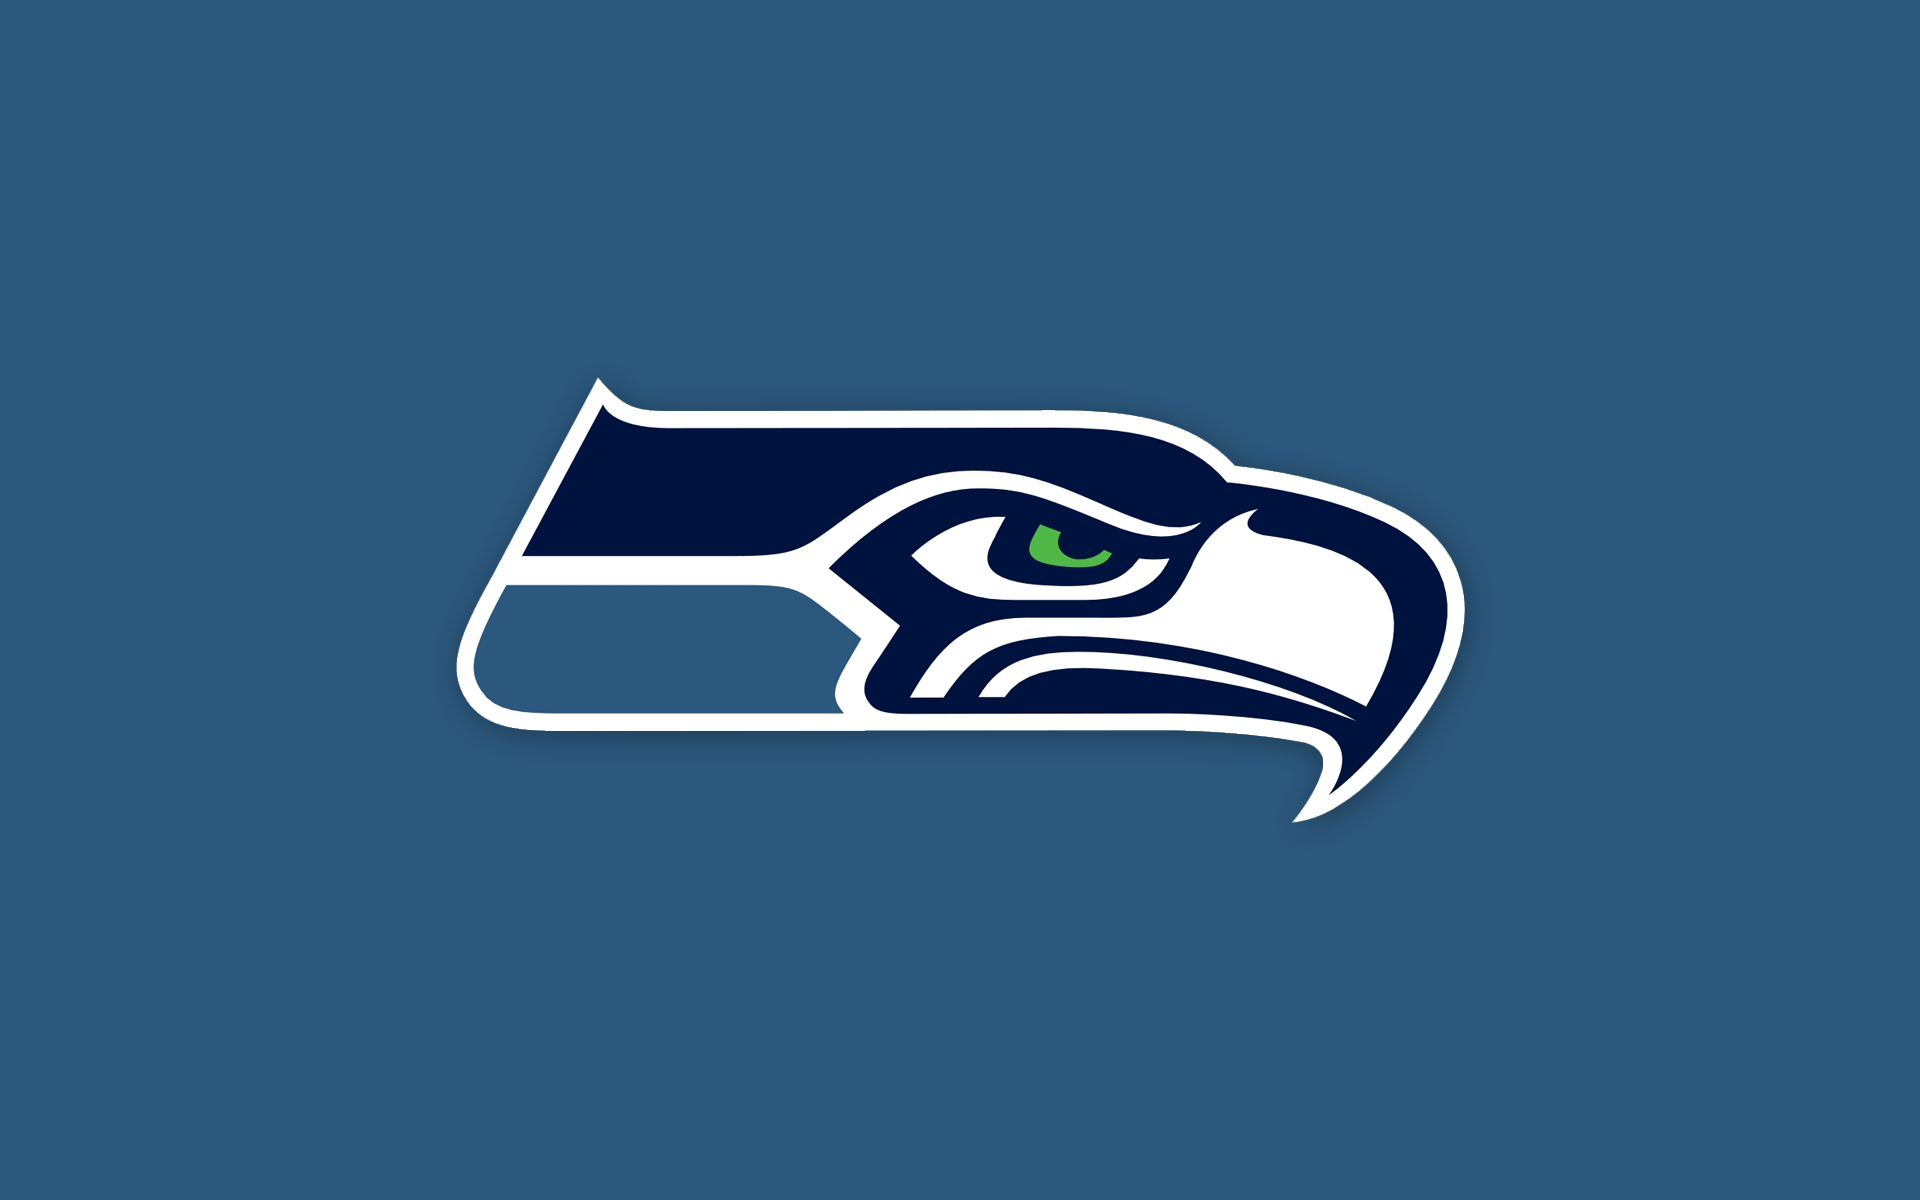 Arizona Cardinals Wallpaper Iphone Seattle Seahawks Hd Wallpaper Background Image